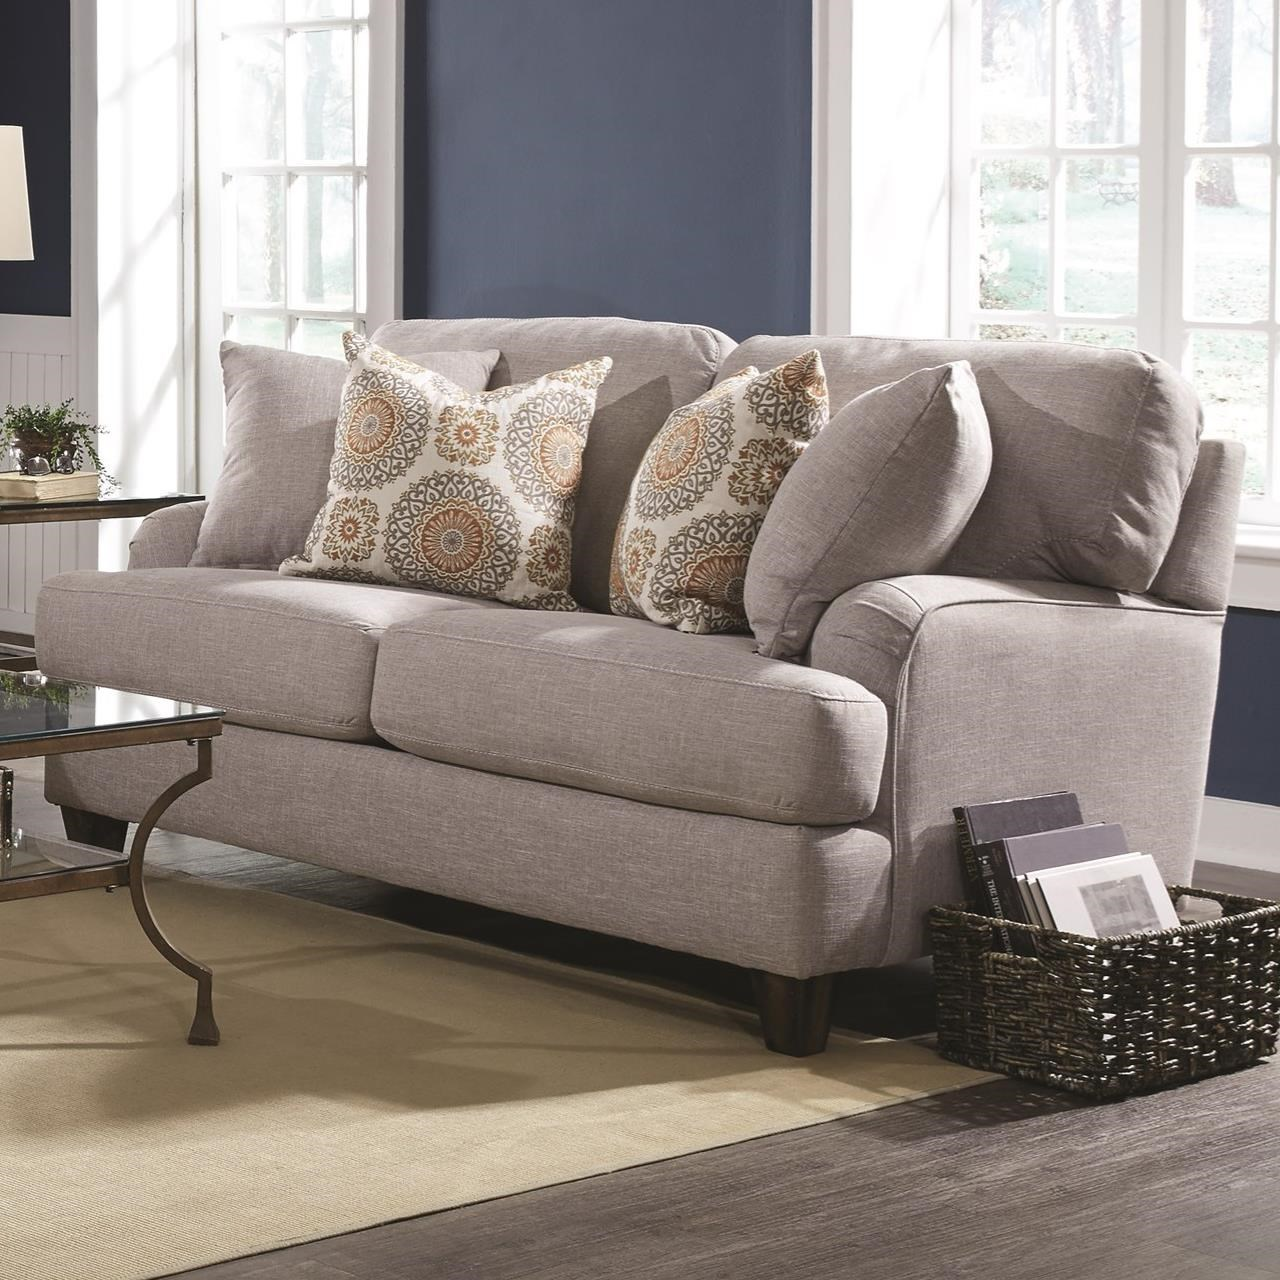 Carmel Loveseat by Franklin at Wilcox Furniture